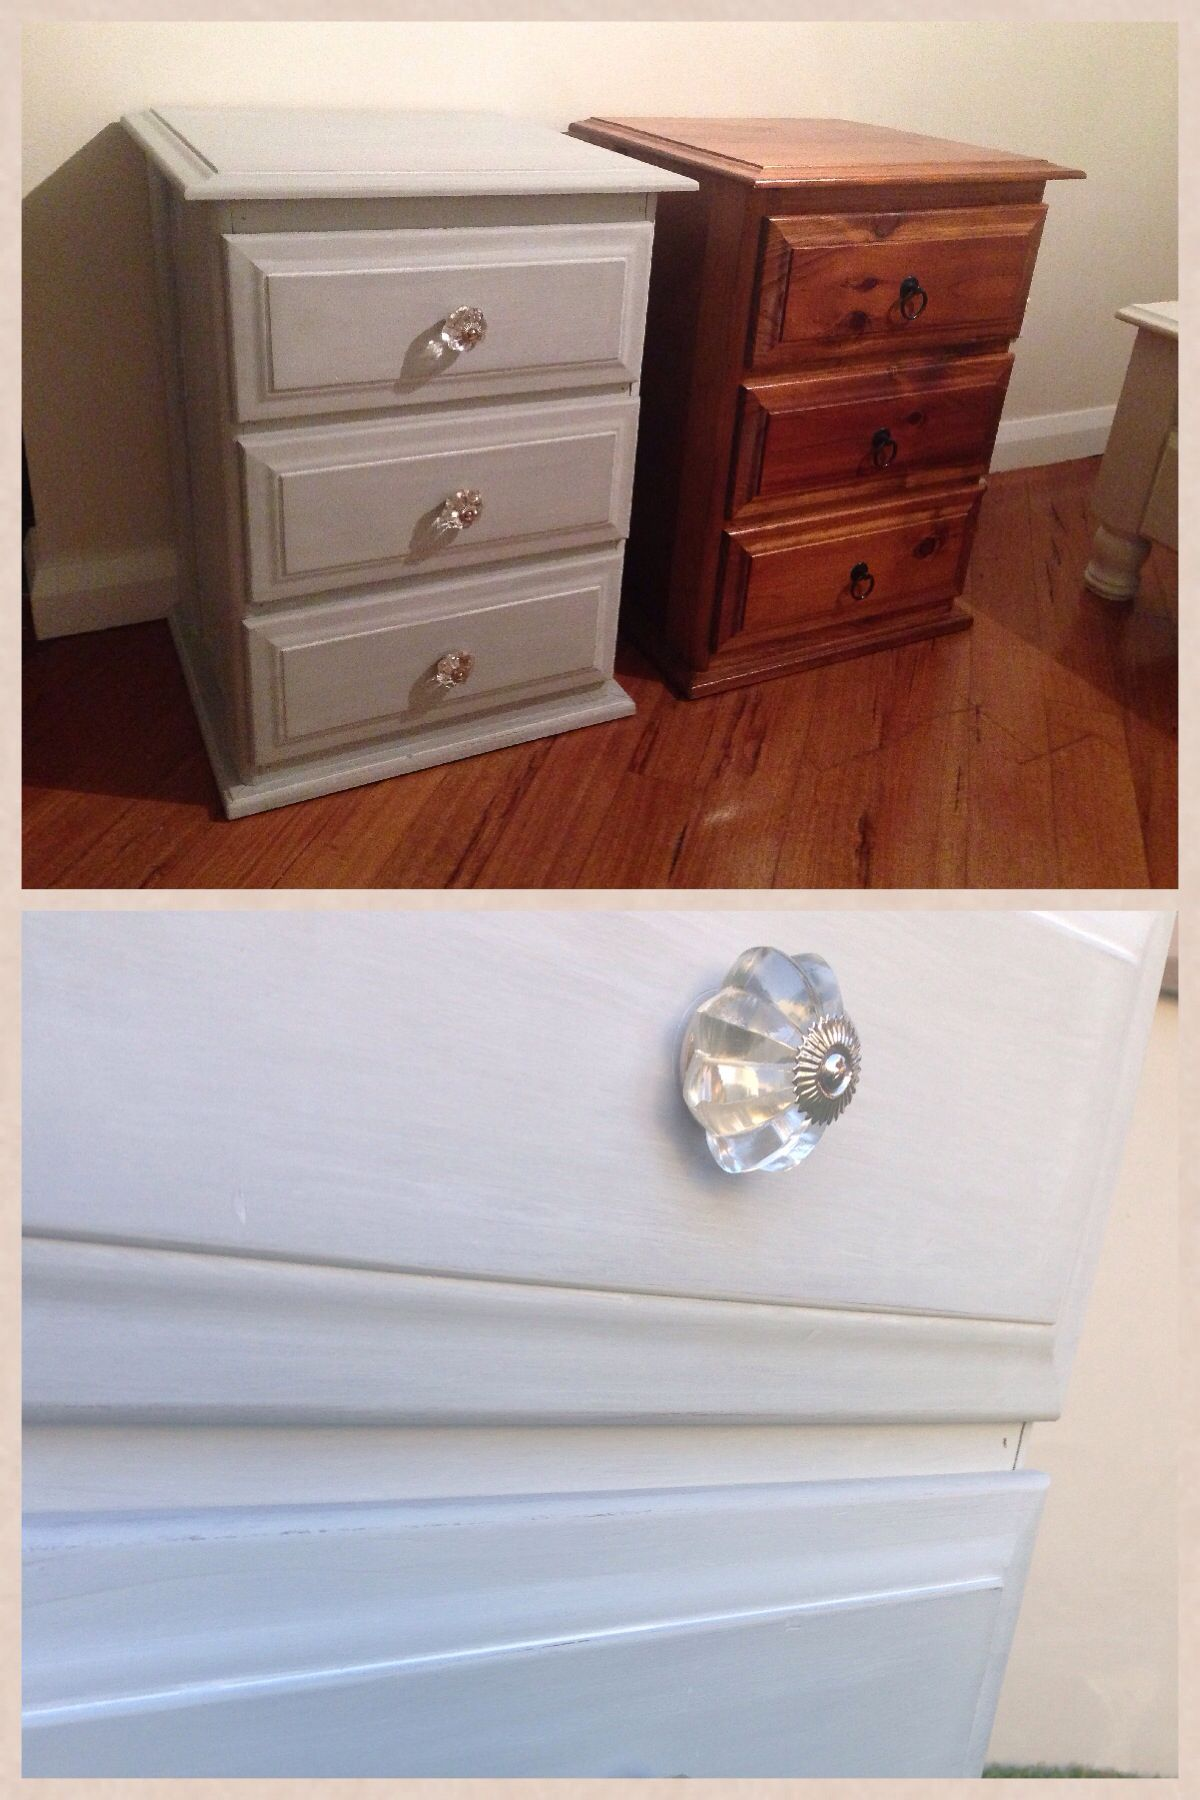 Diy Grey Wash And Glass Star Knobs Bedside Table Upcycle